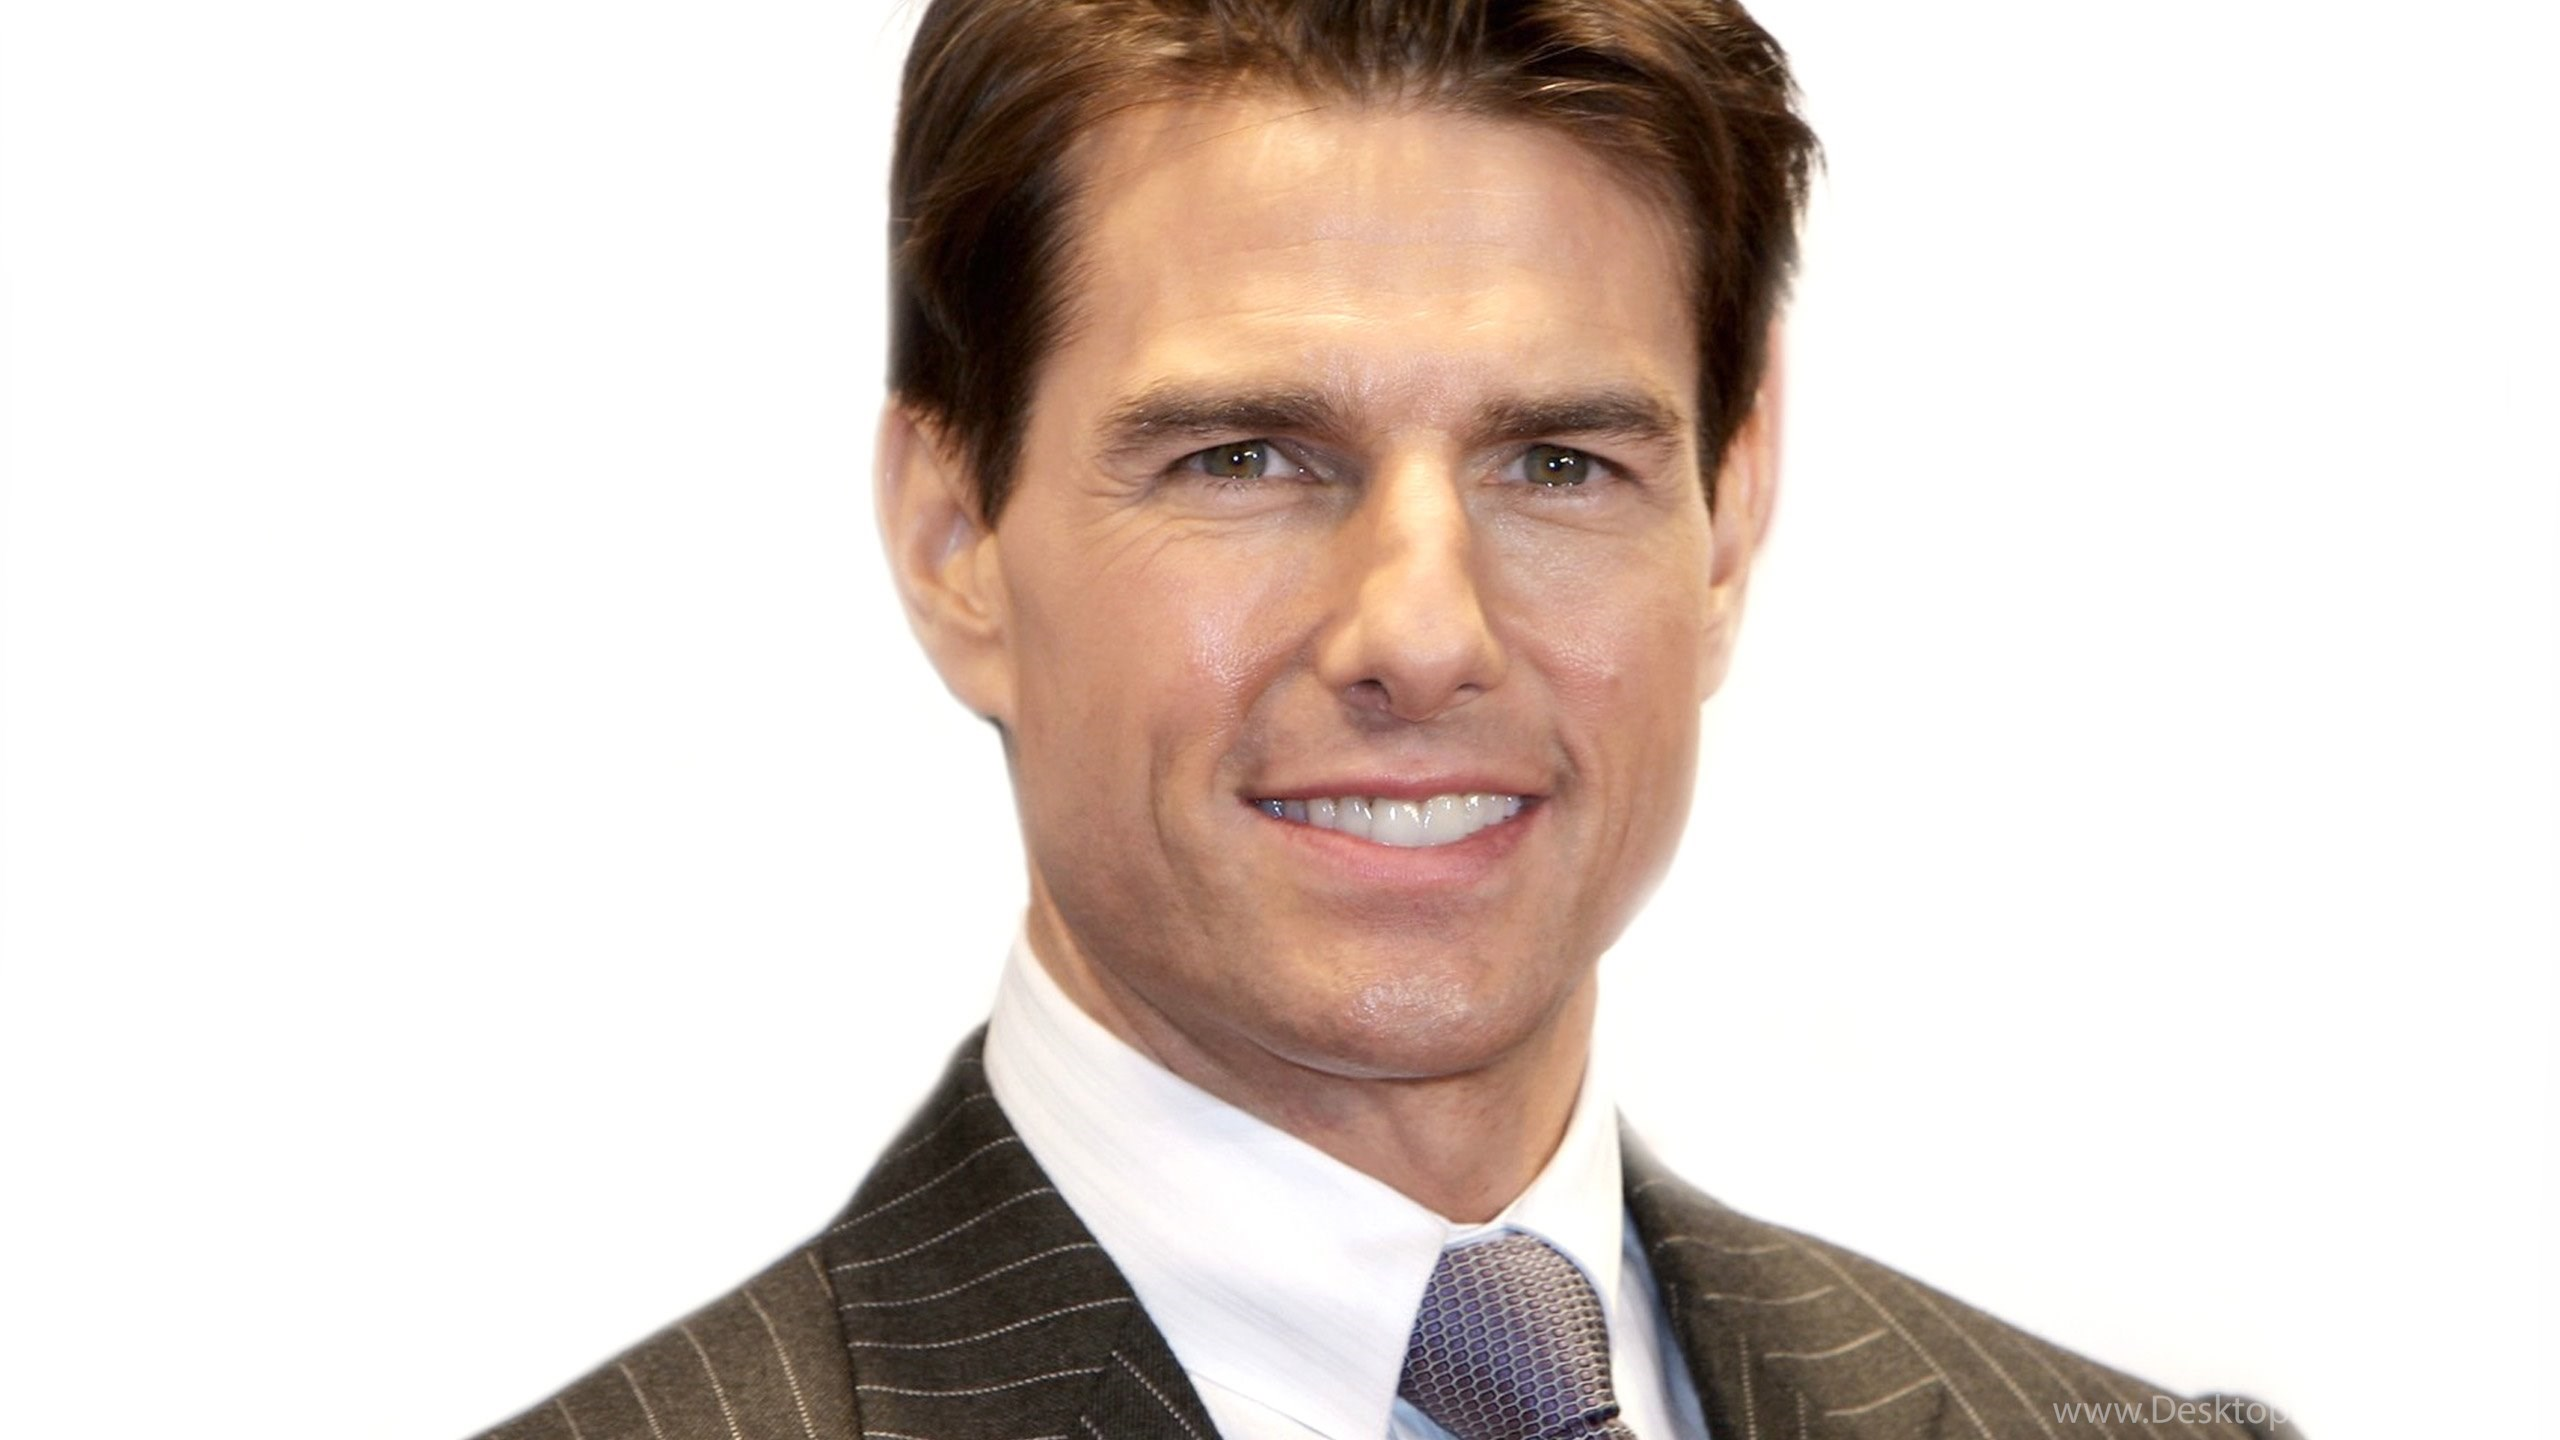 tom cruise screensaver full hd wallpapers search free download